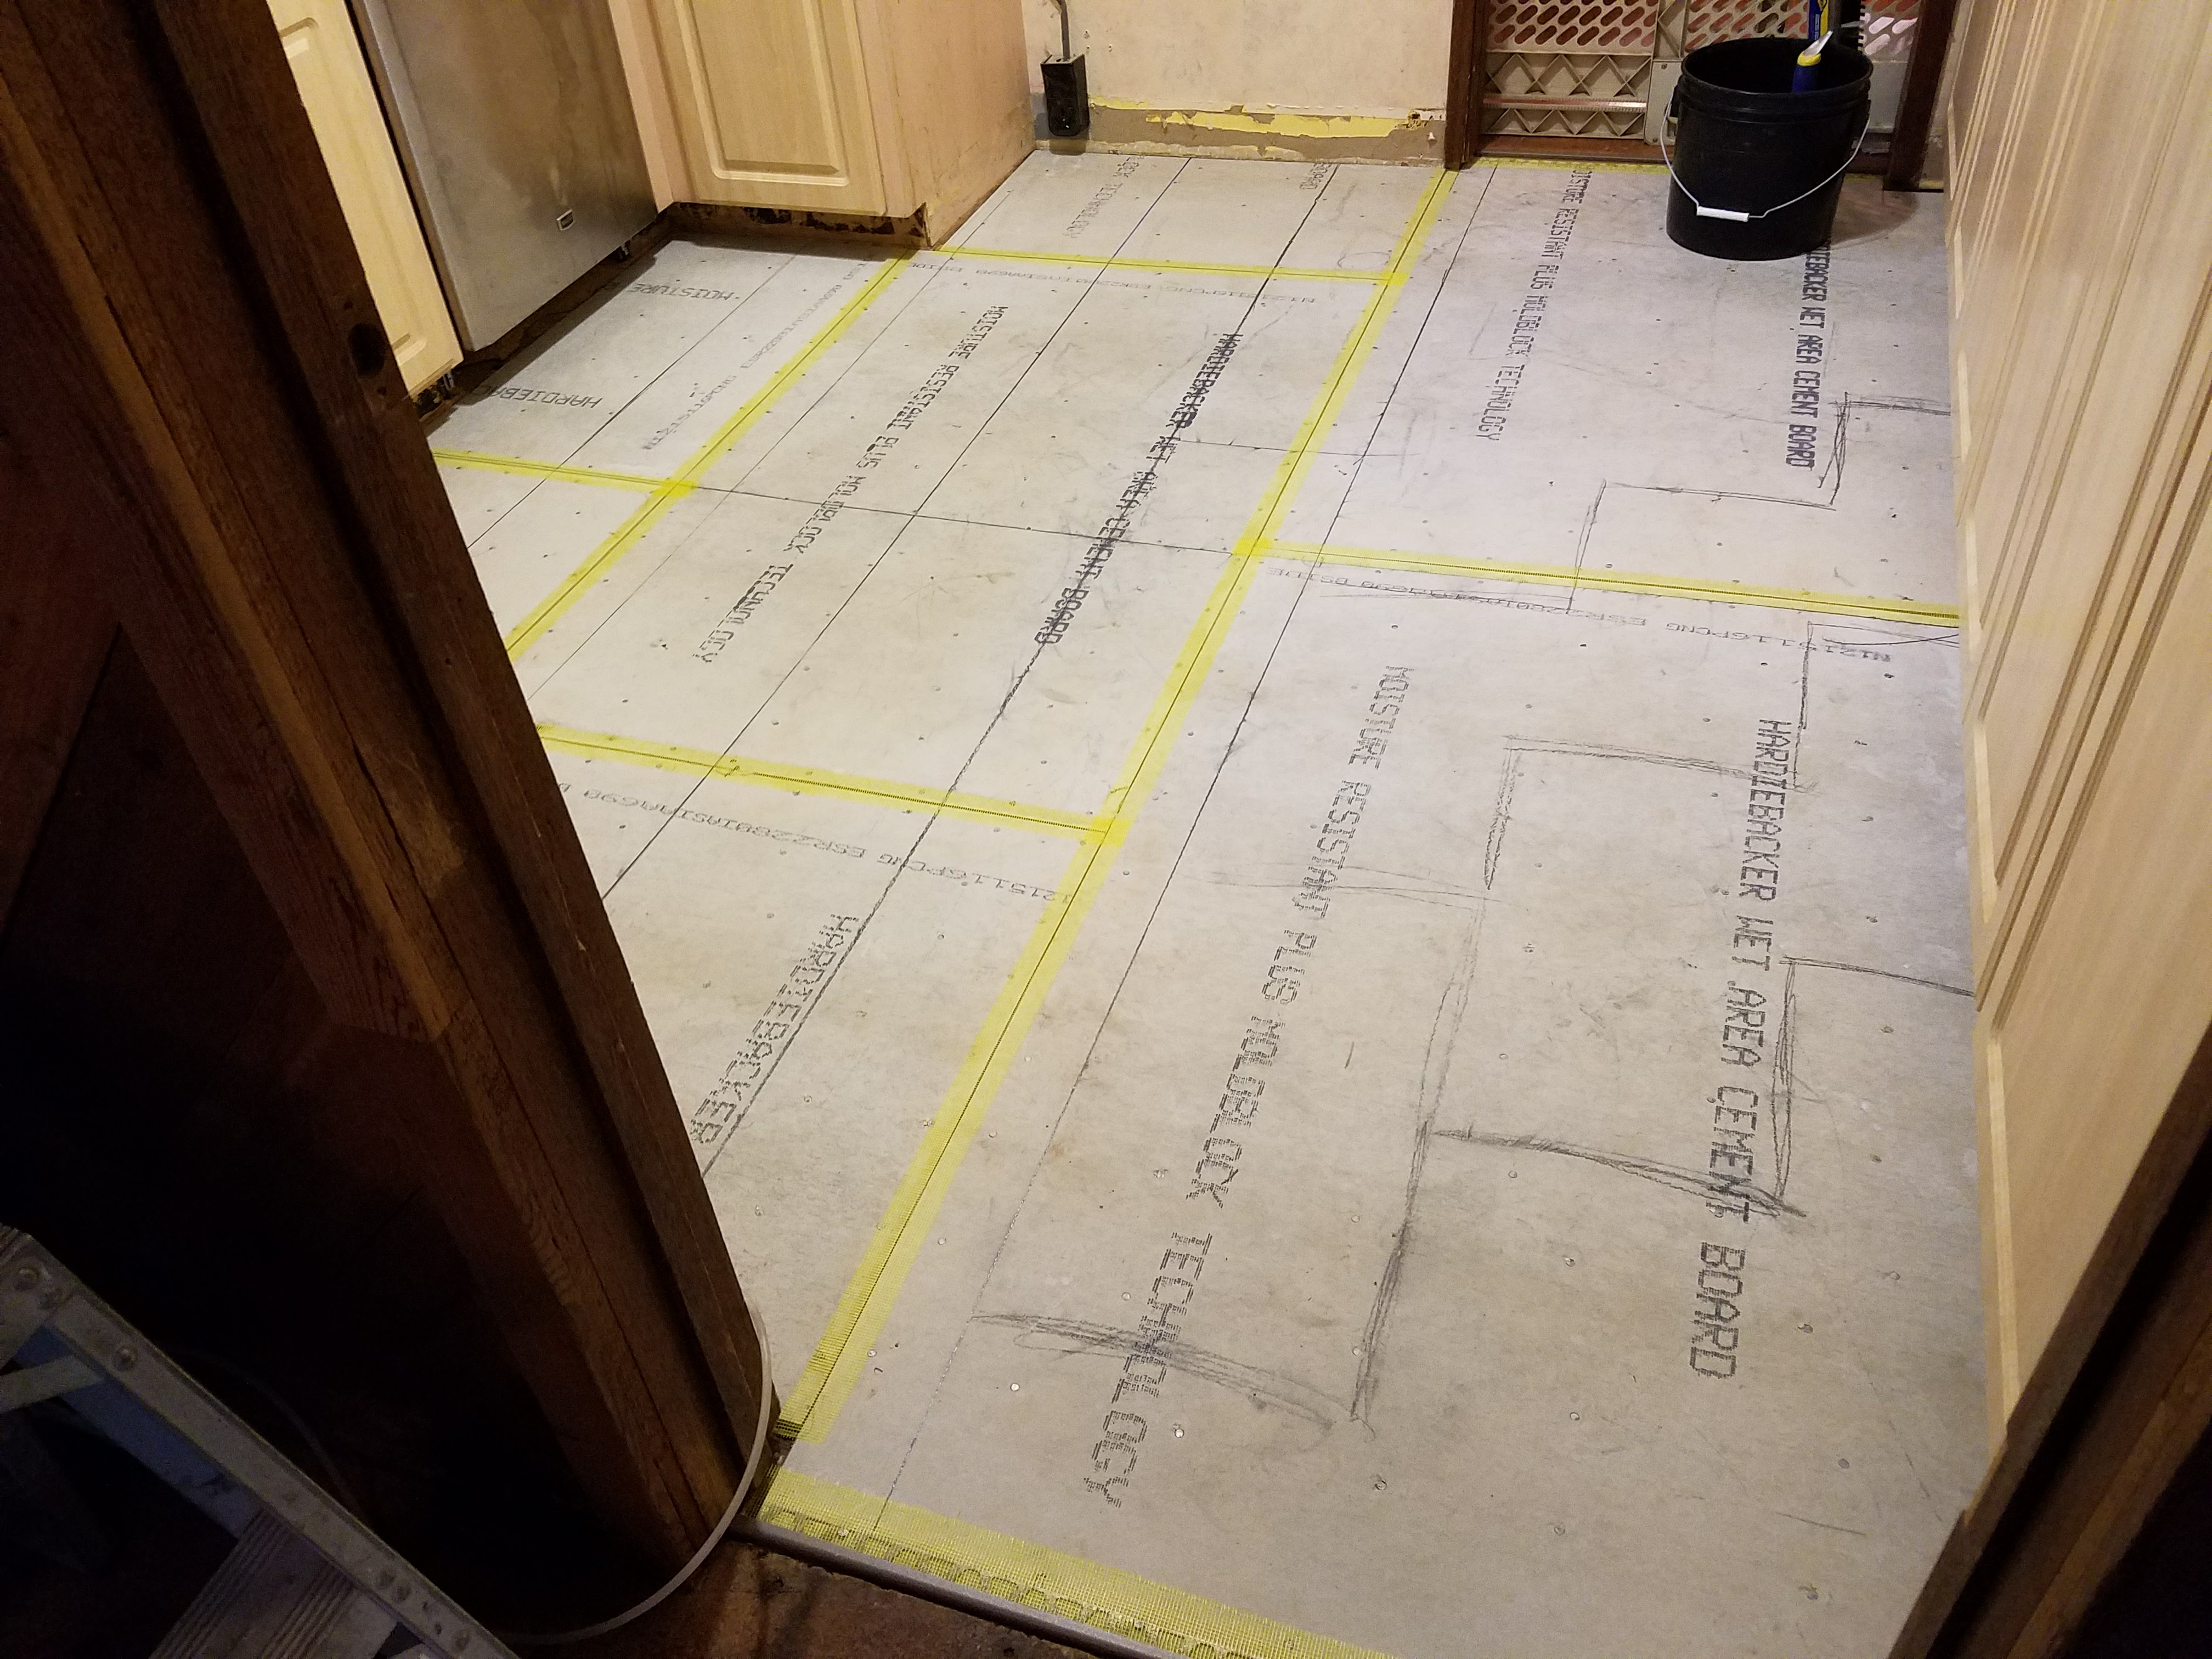 cement board for bathroom floor rot repair archives bragg construction 22864 | 20160629 153419